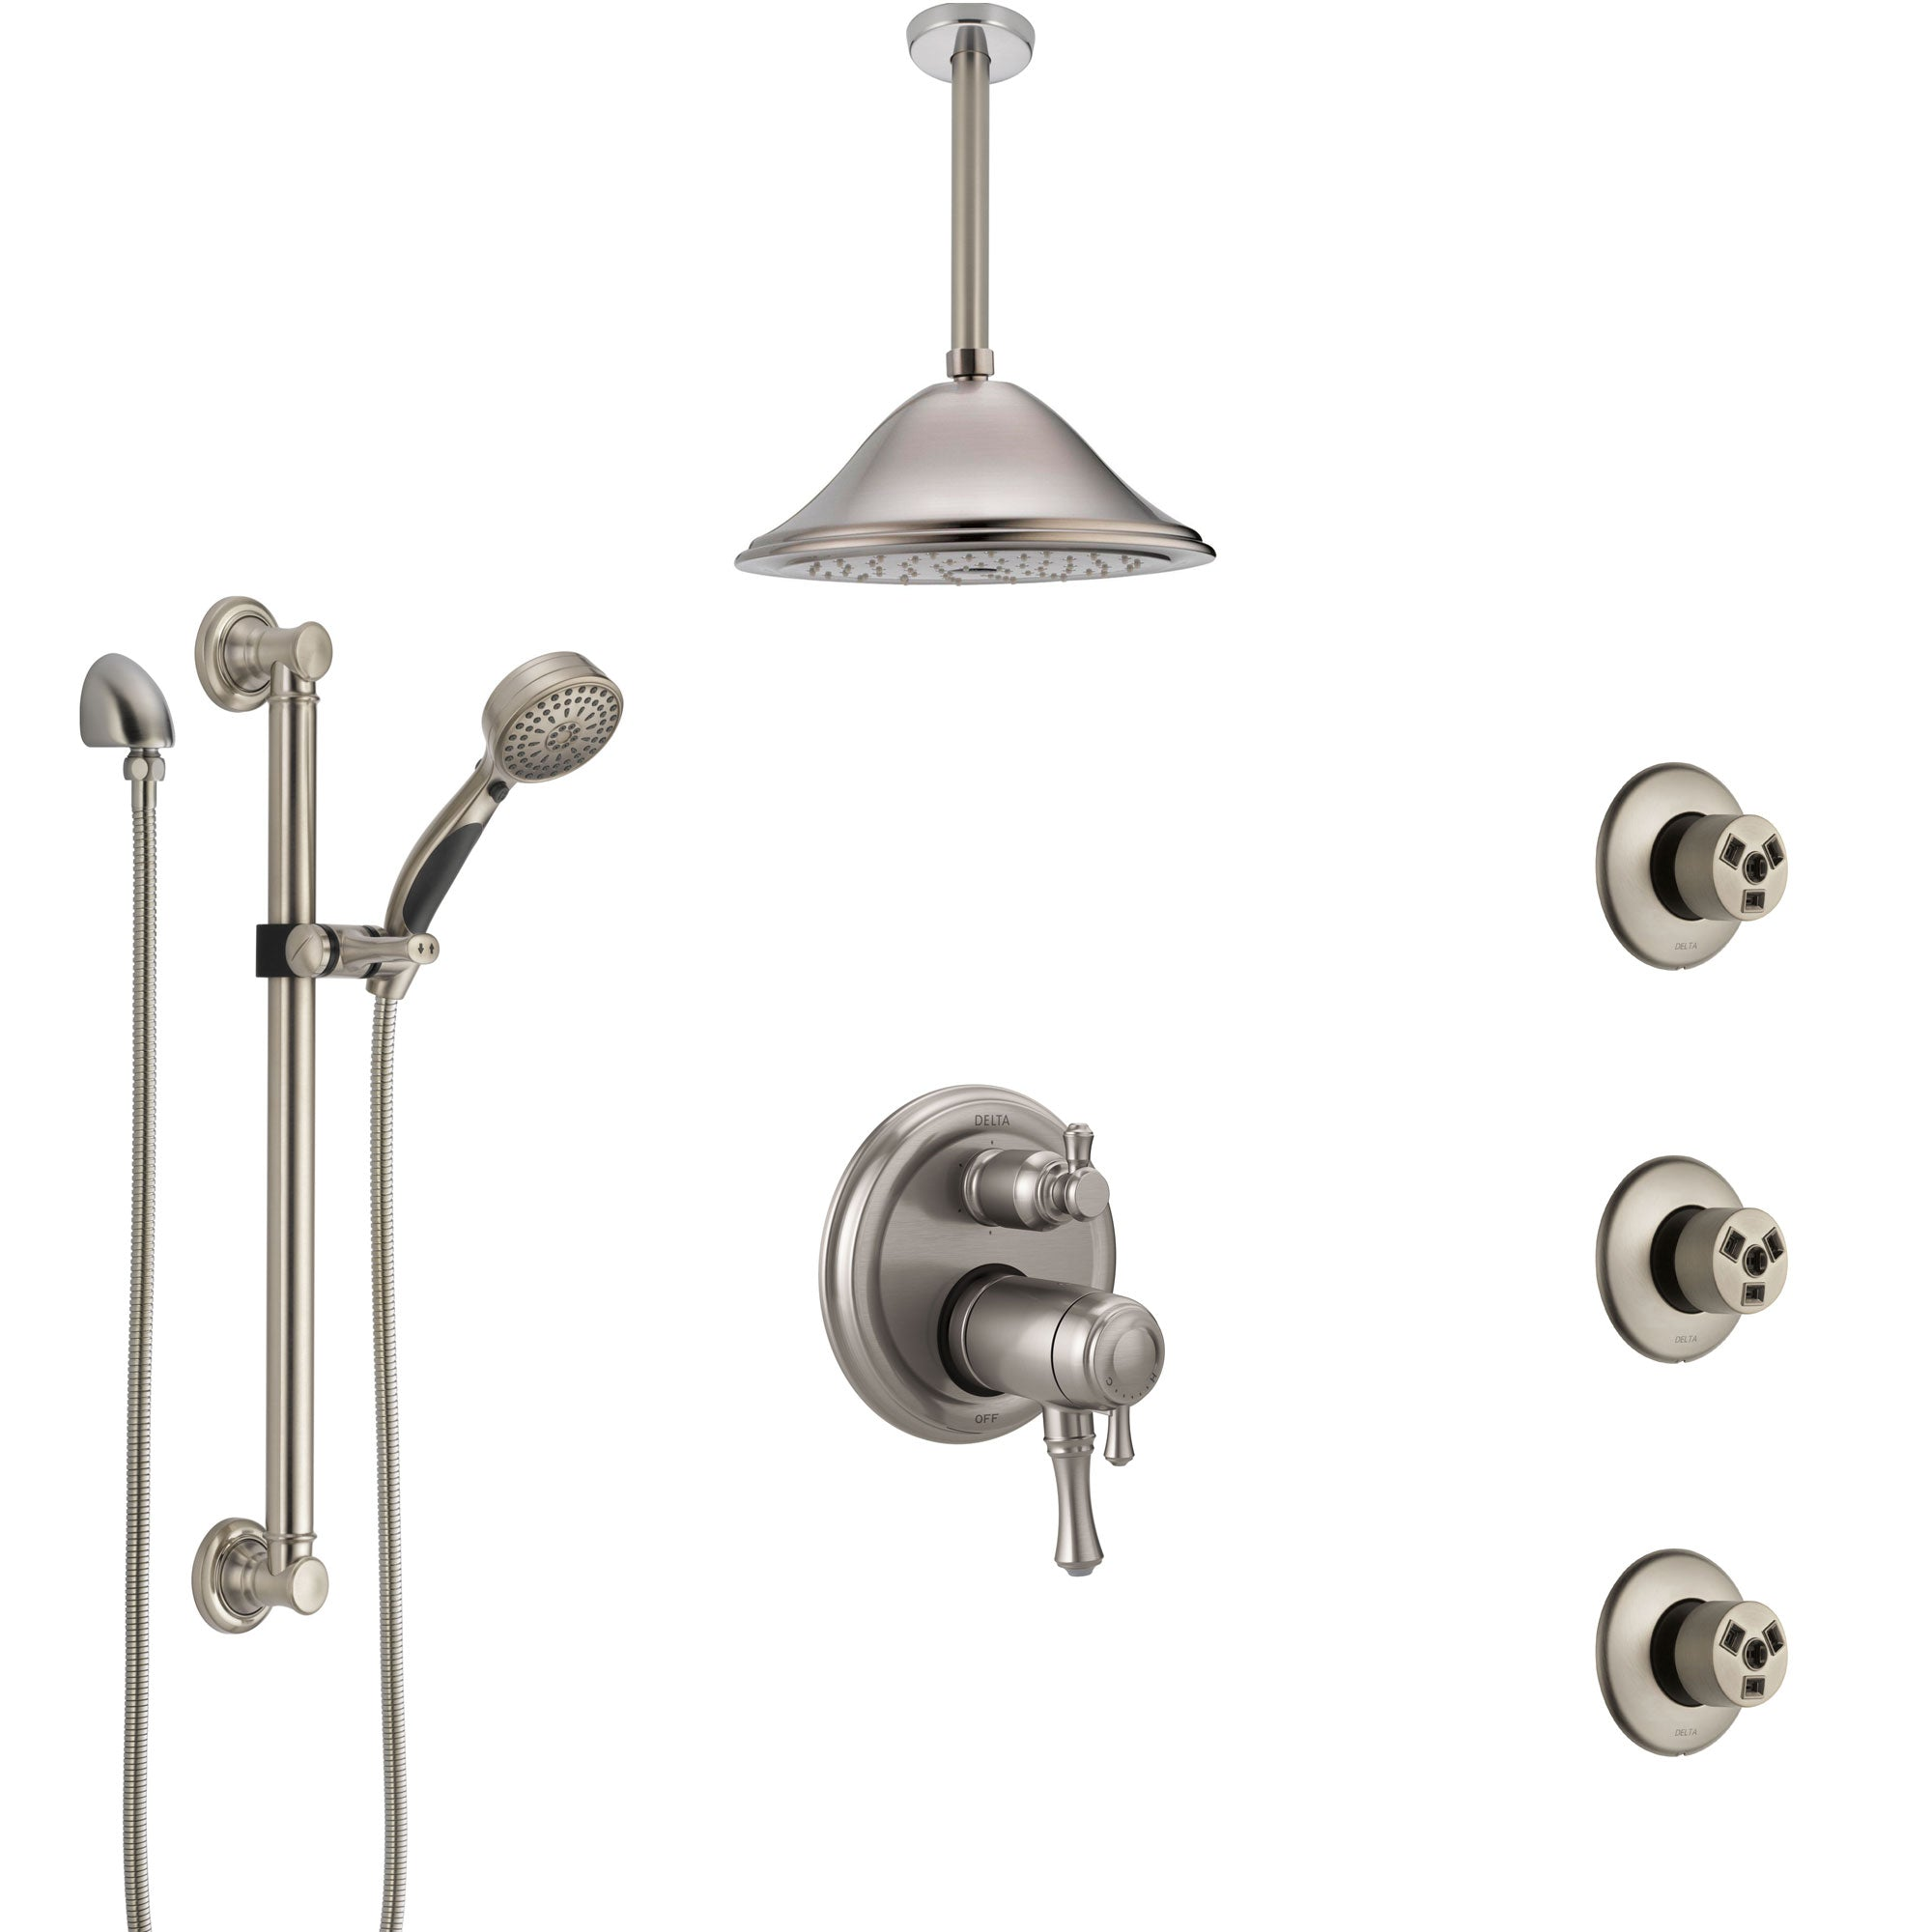 Delta Cassidy Dual Thermostatic Control Stainless Steel Finish Shower System, Ceiling Showerhead, 3 Body Jets, Grab Bar Hand Spray SS27T997SS3